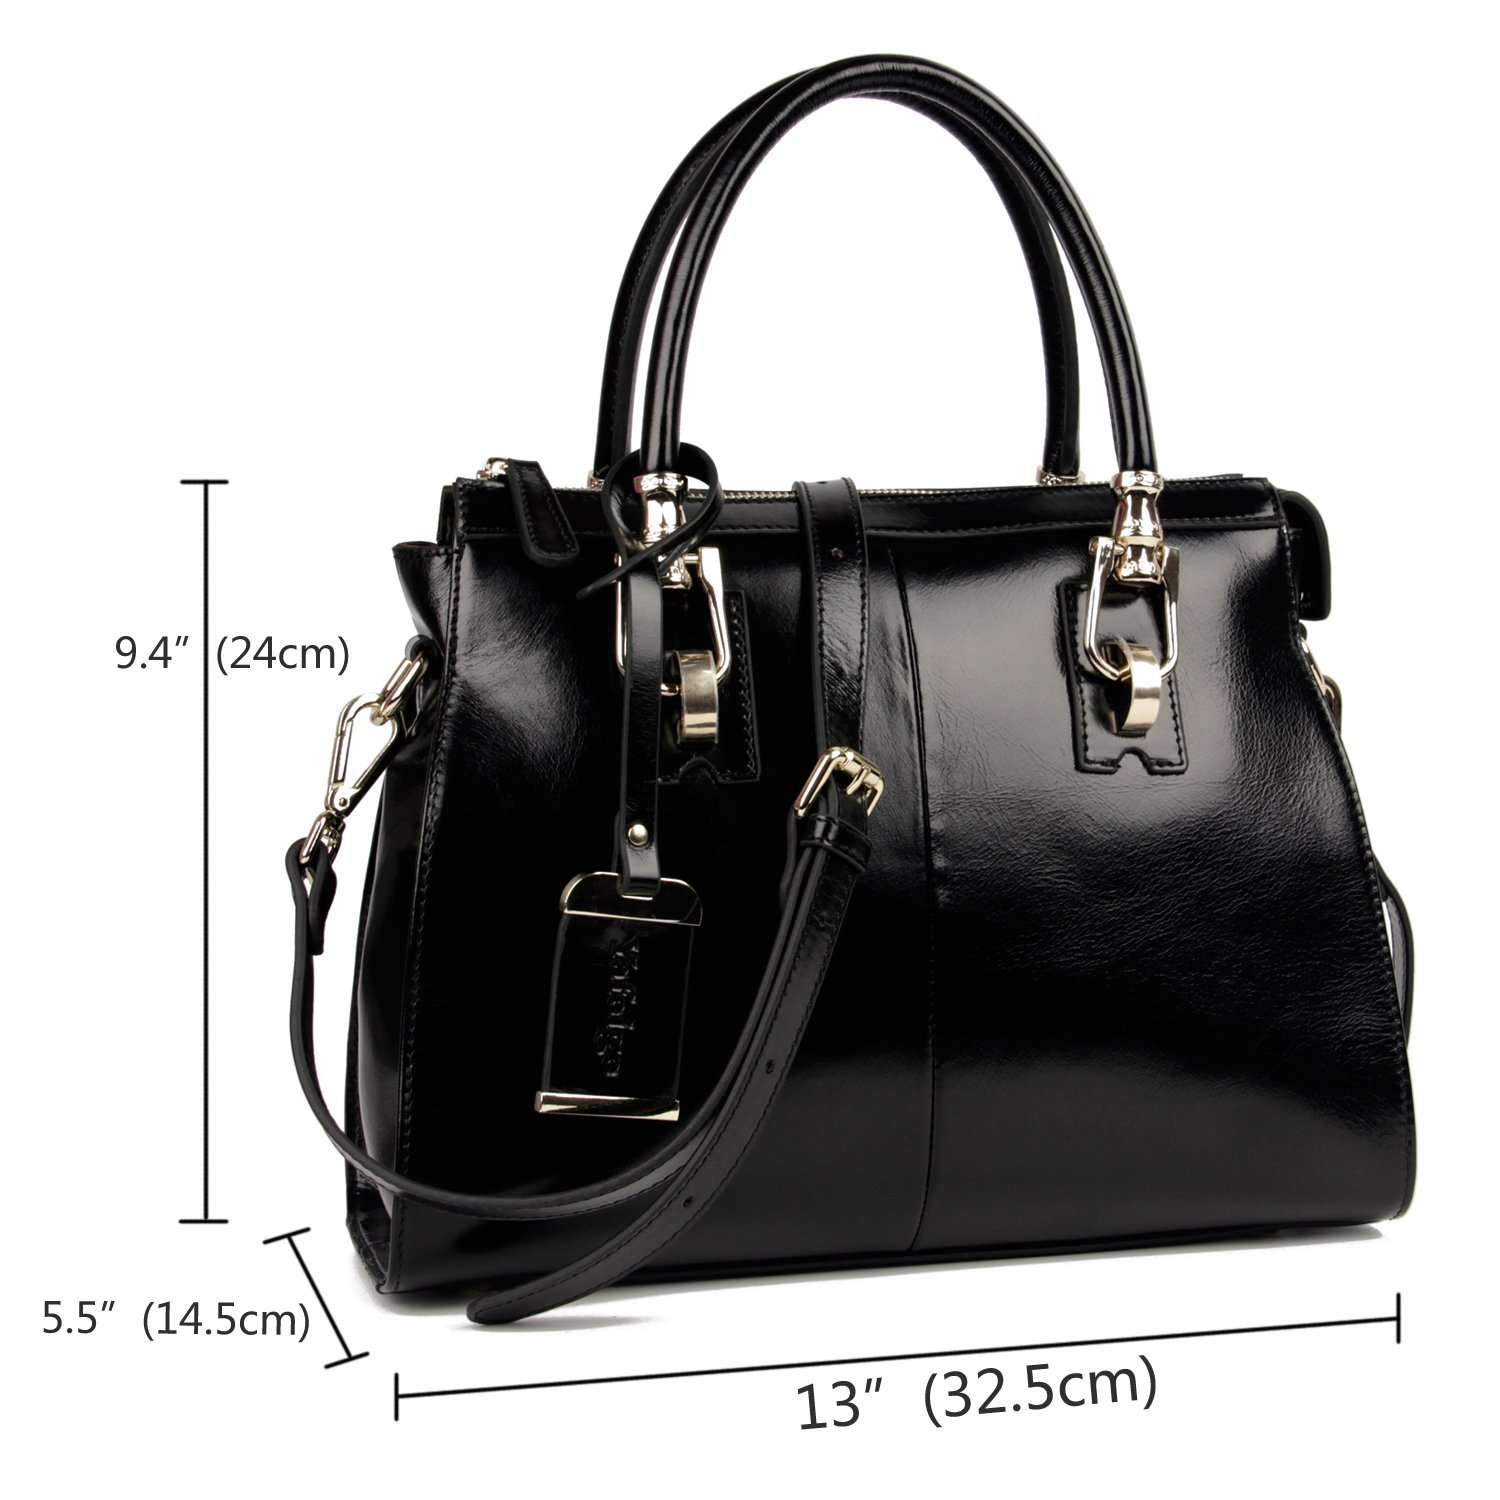 b86ffe50bf07 Amazon.com  Yafeige Womens Lady s Handbag Vintage Luxury Wax Genuine Leather  Tote Shoulder Bag Satchel Purse(Black)  Clothing